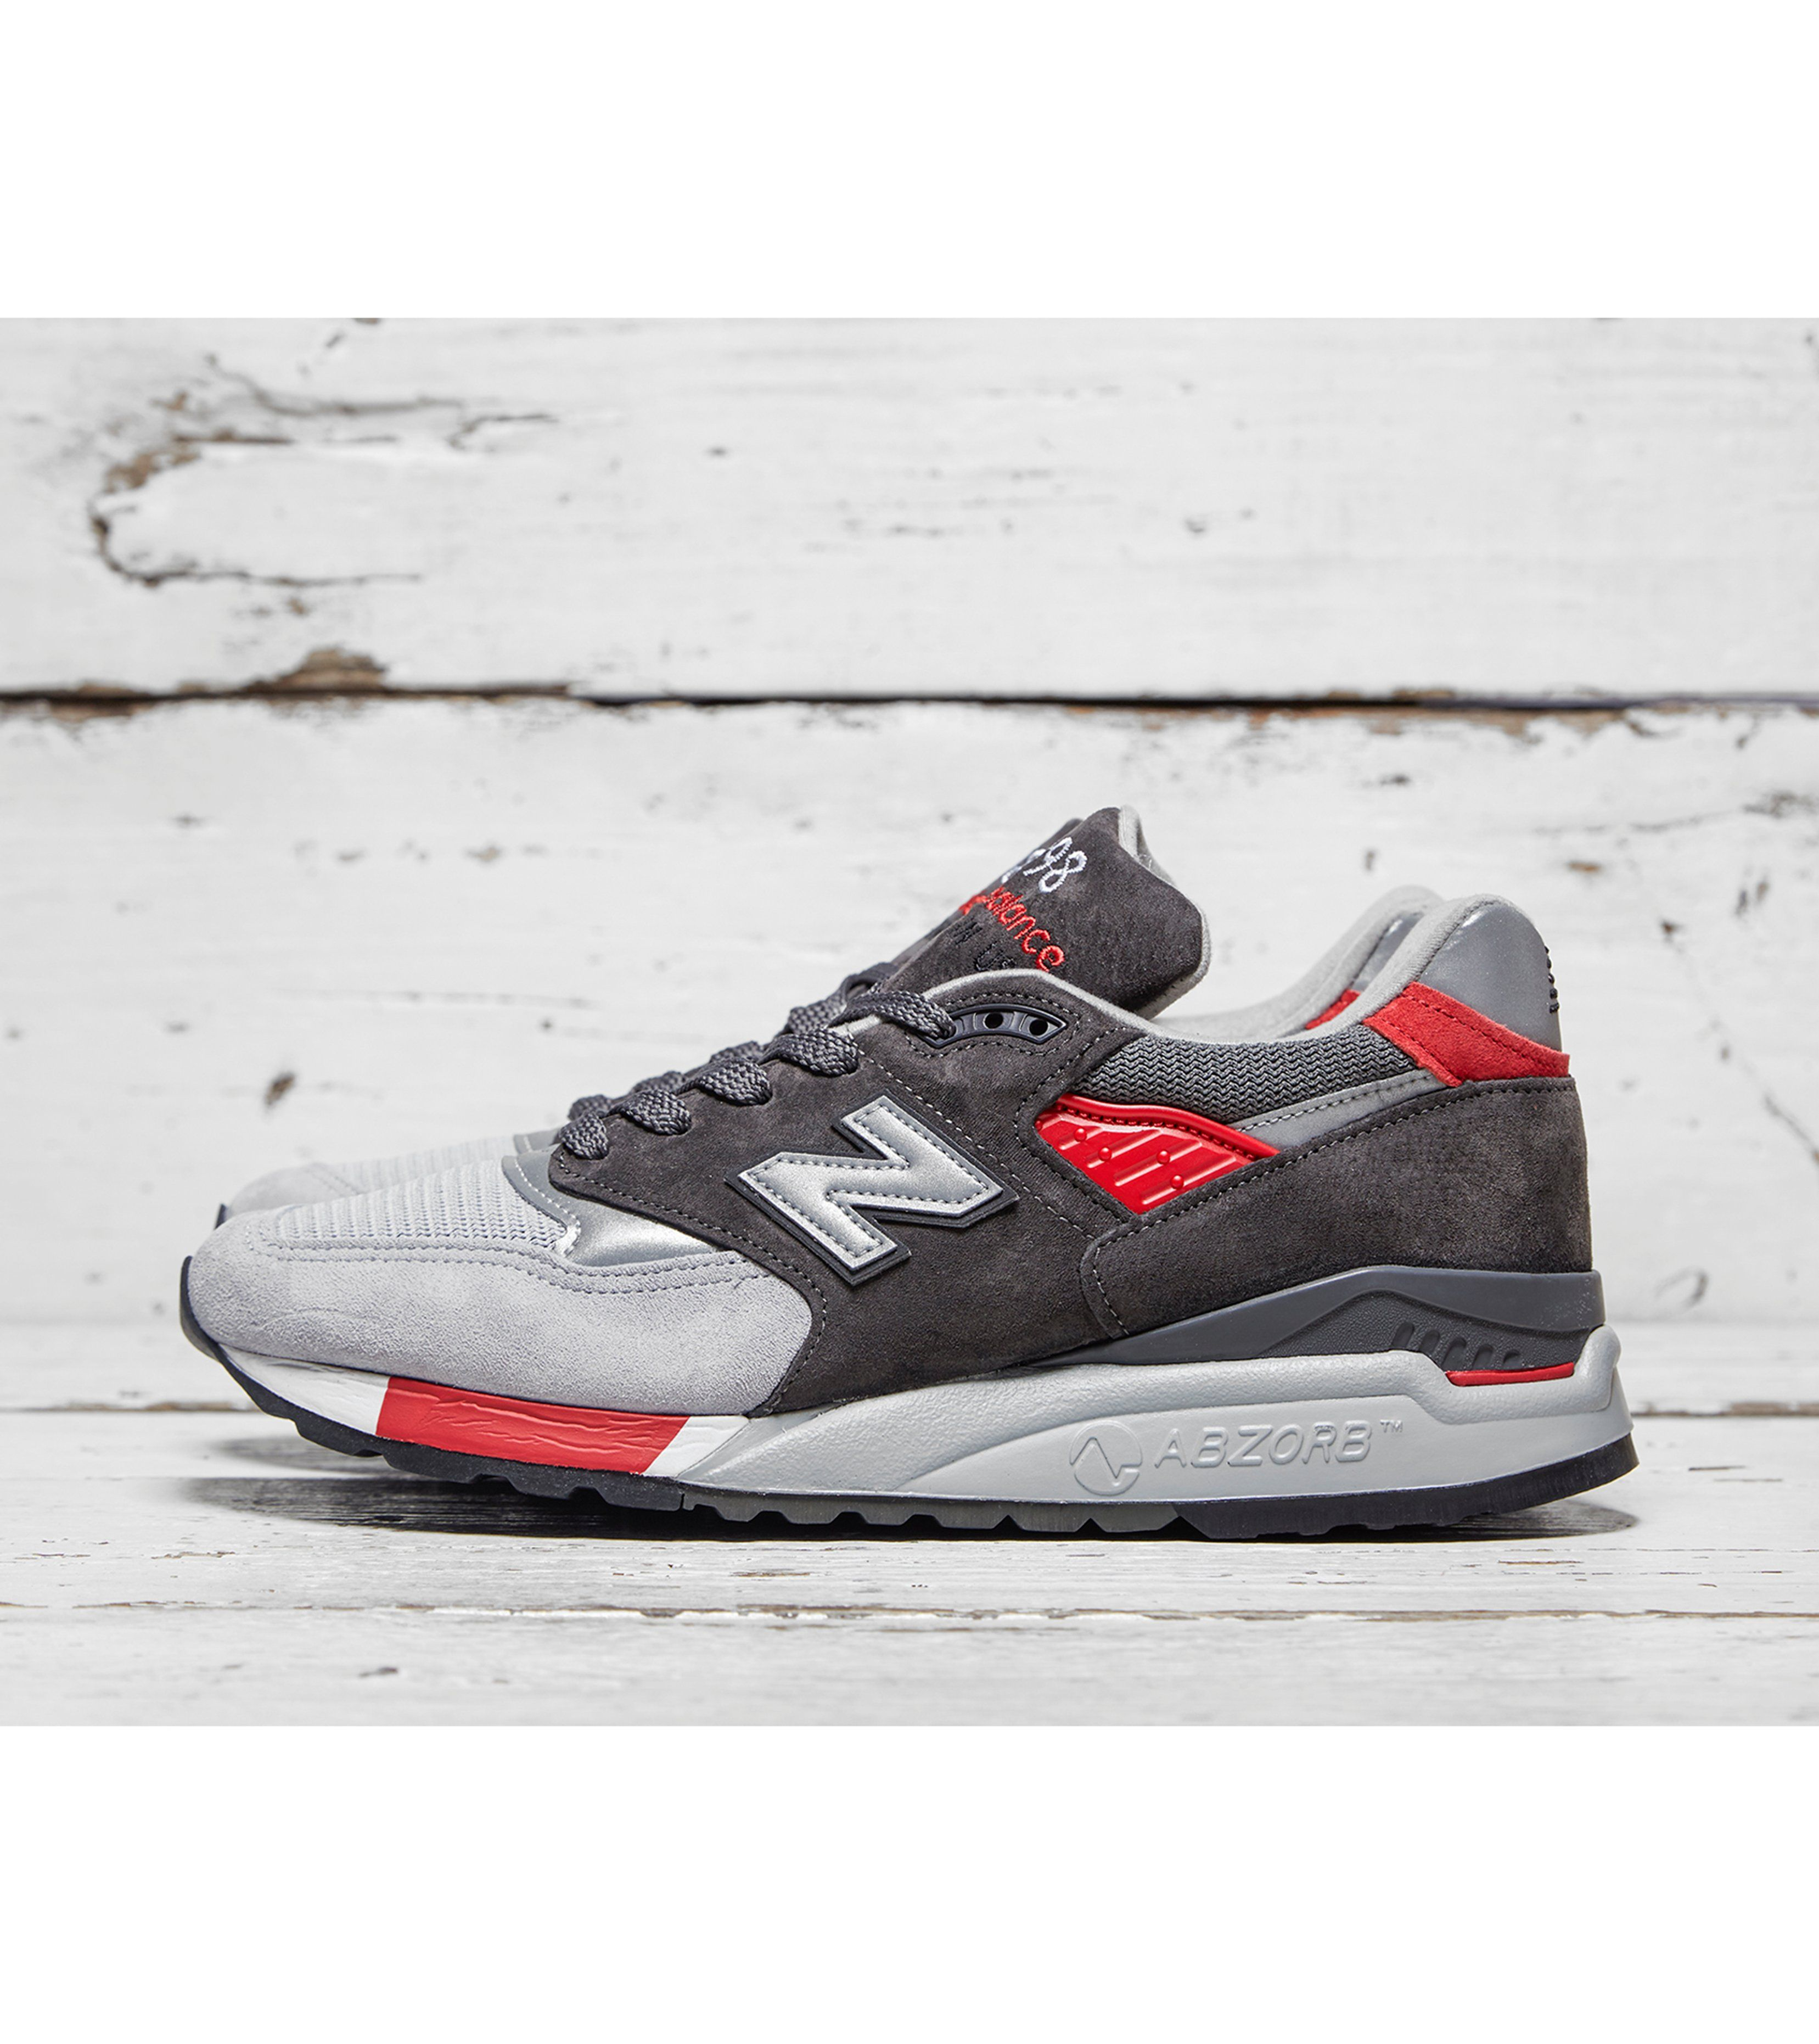 coupon size new balance 998 99d73 e6449